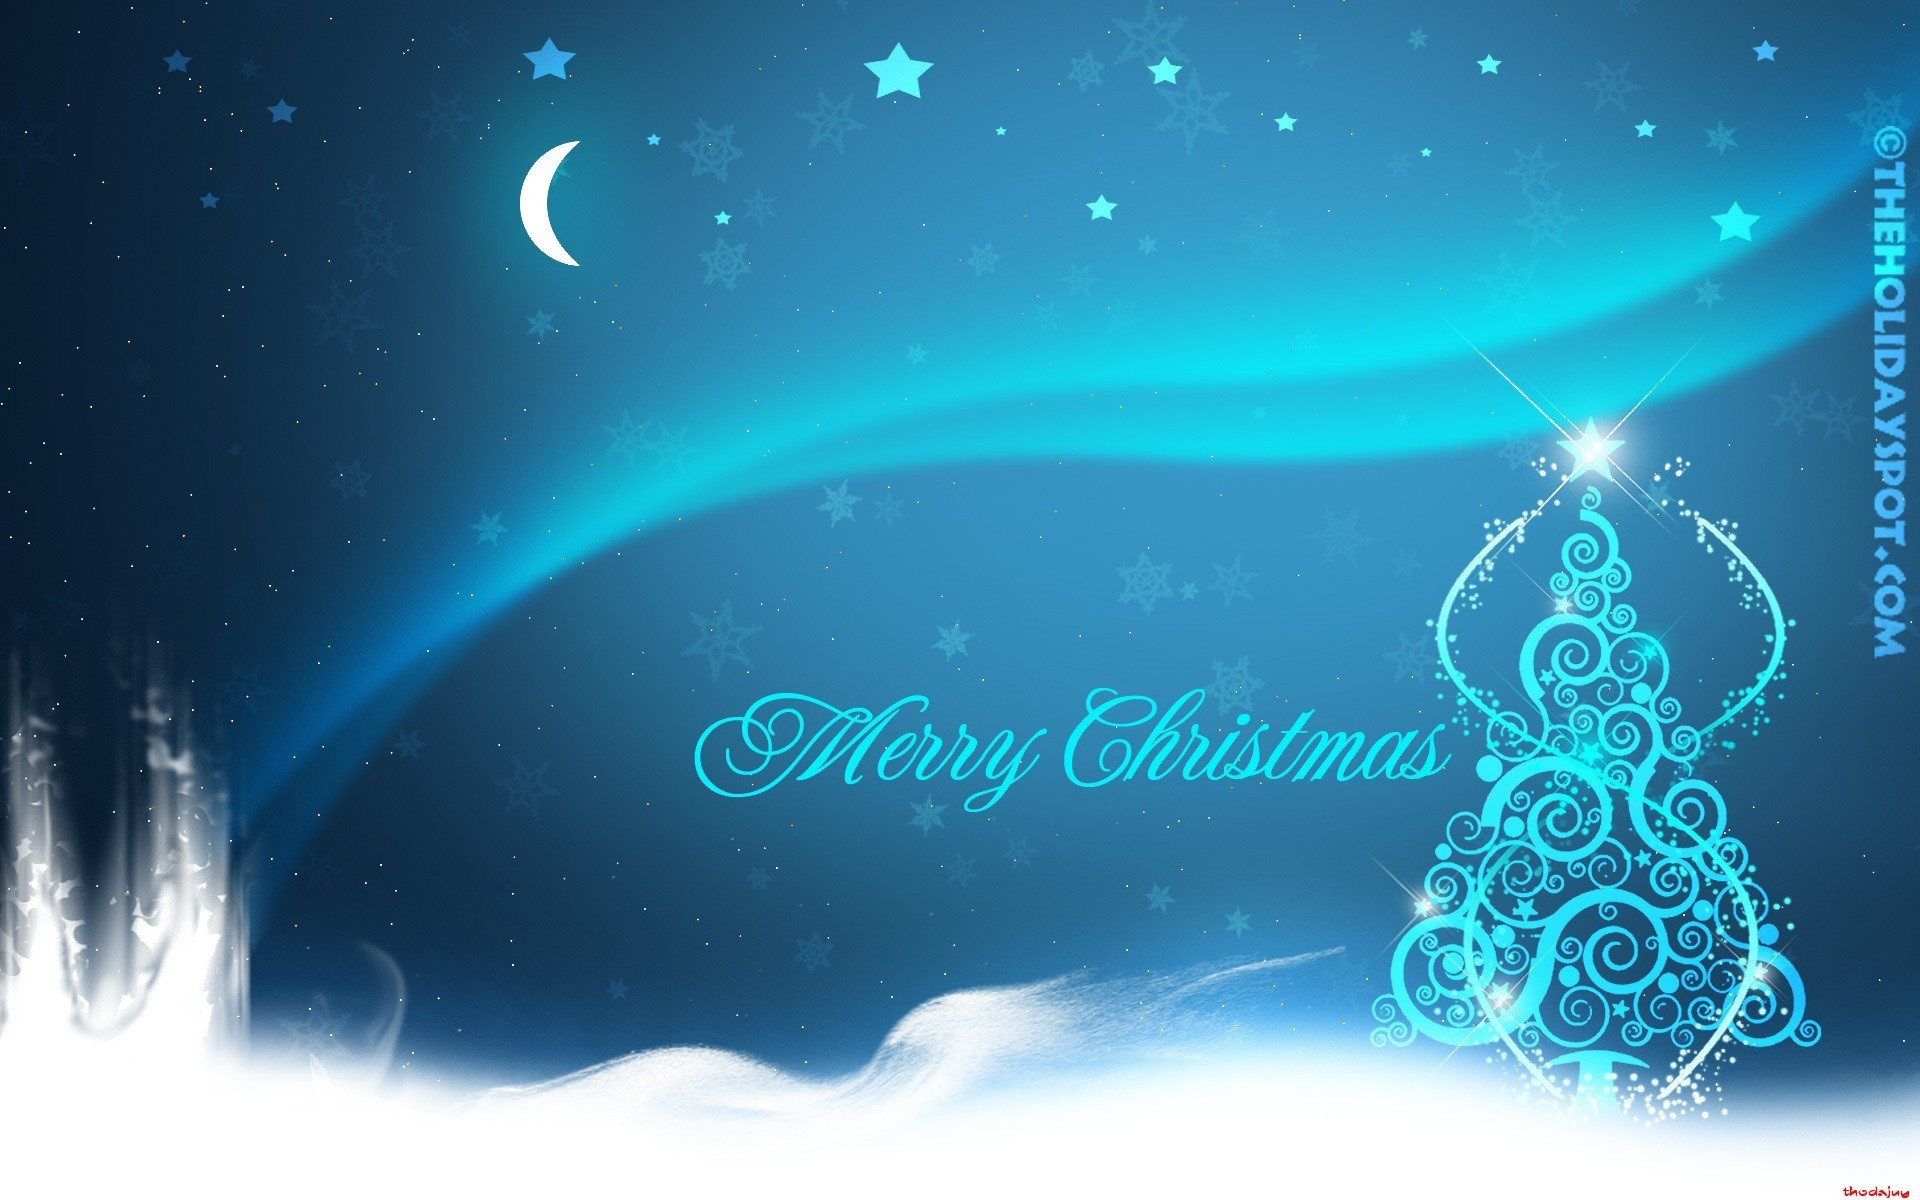 Free Ipad Wallpaper Christmas: 53+ Christian Christmas Backgrounds ·① Download Free Cool